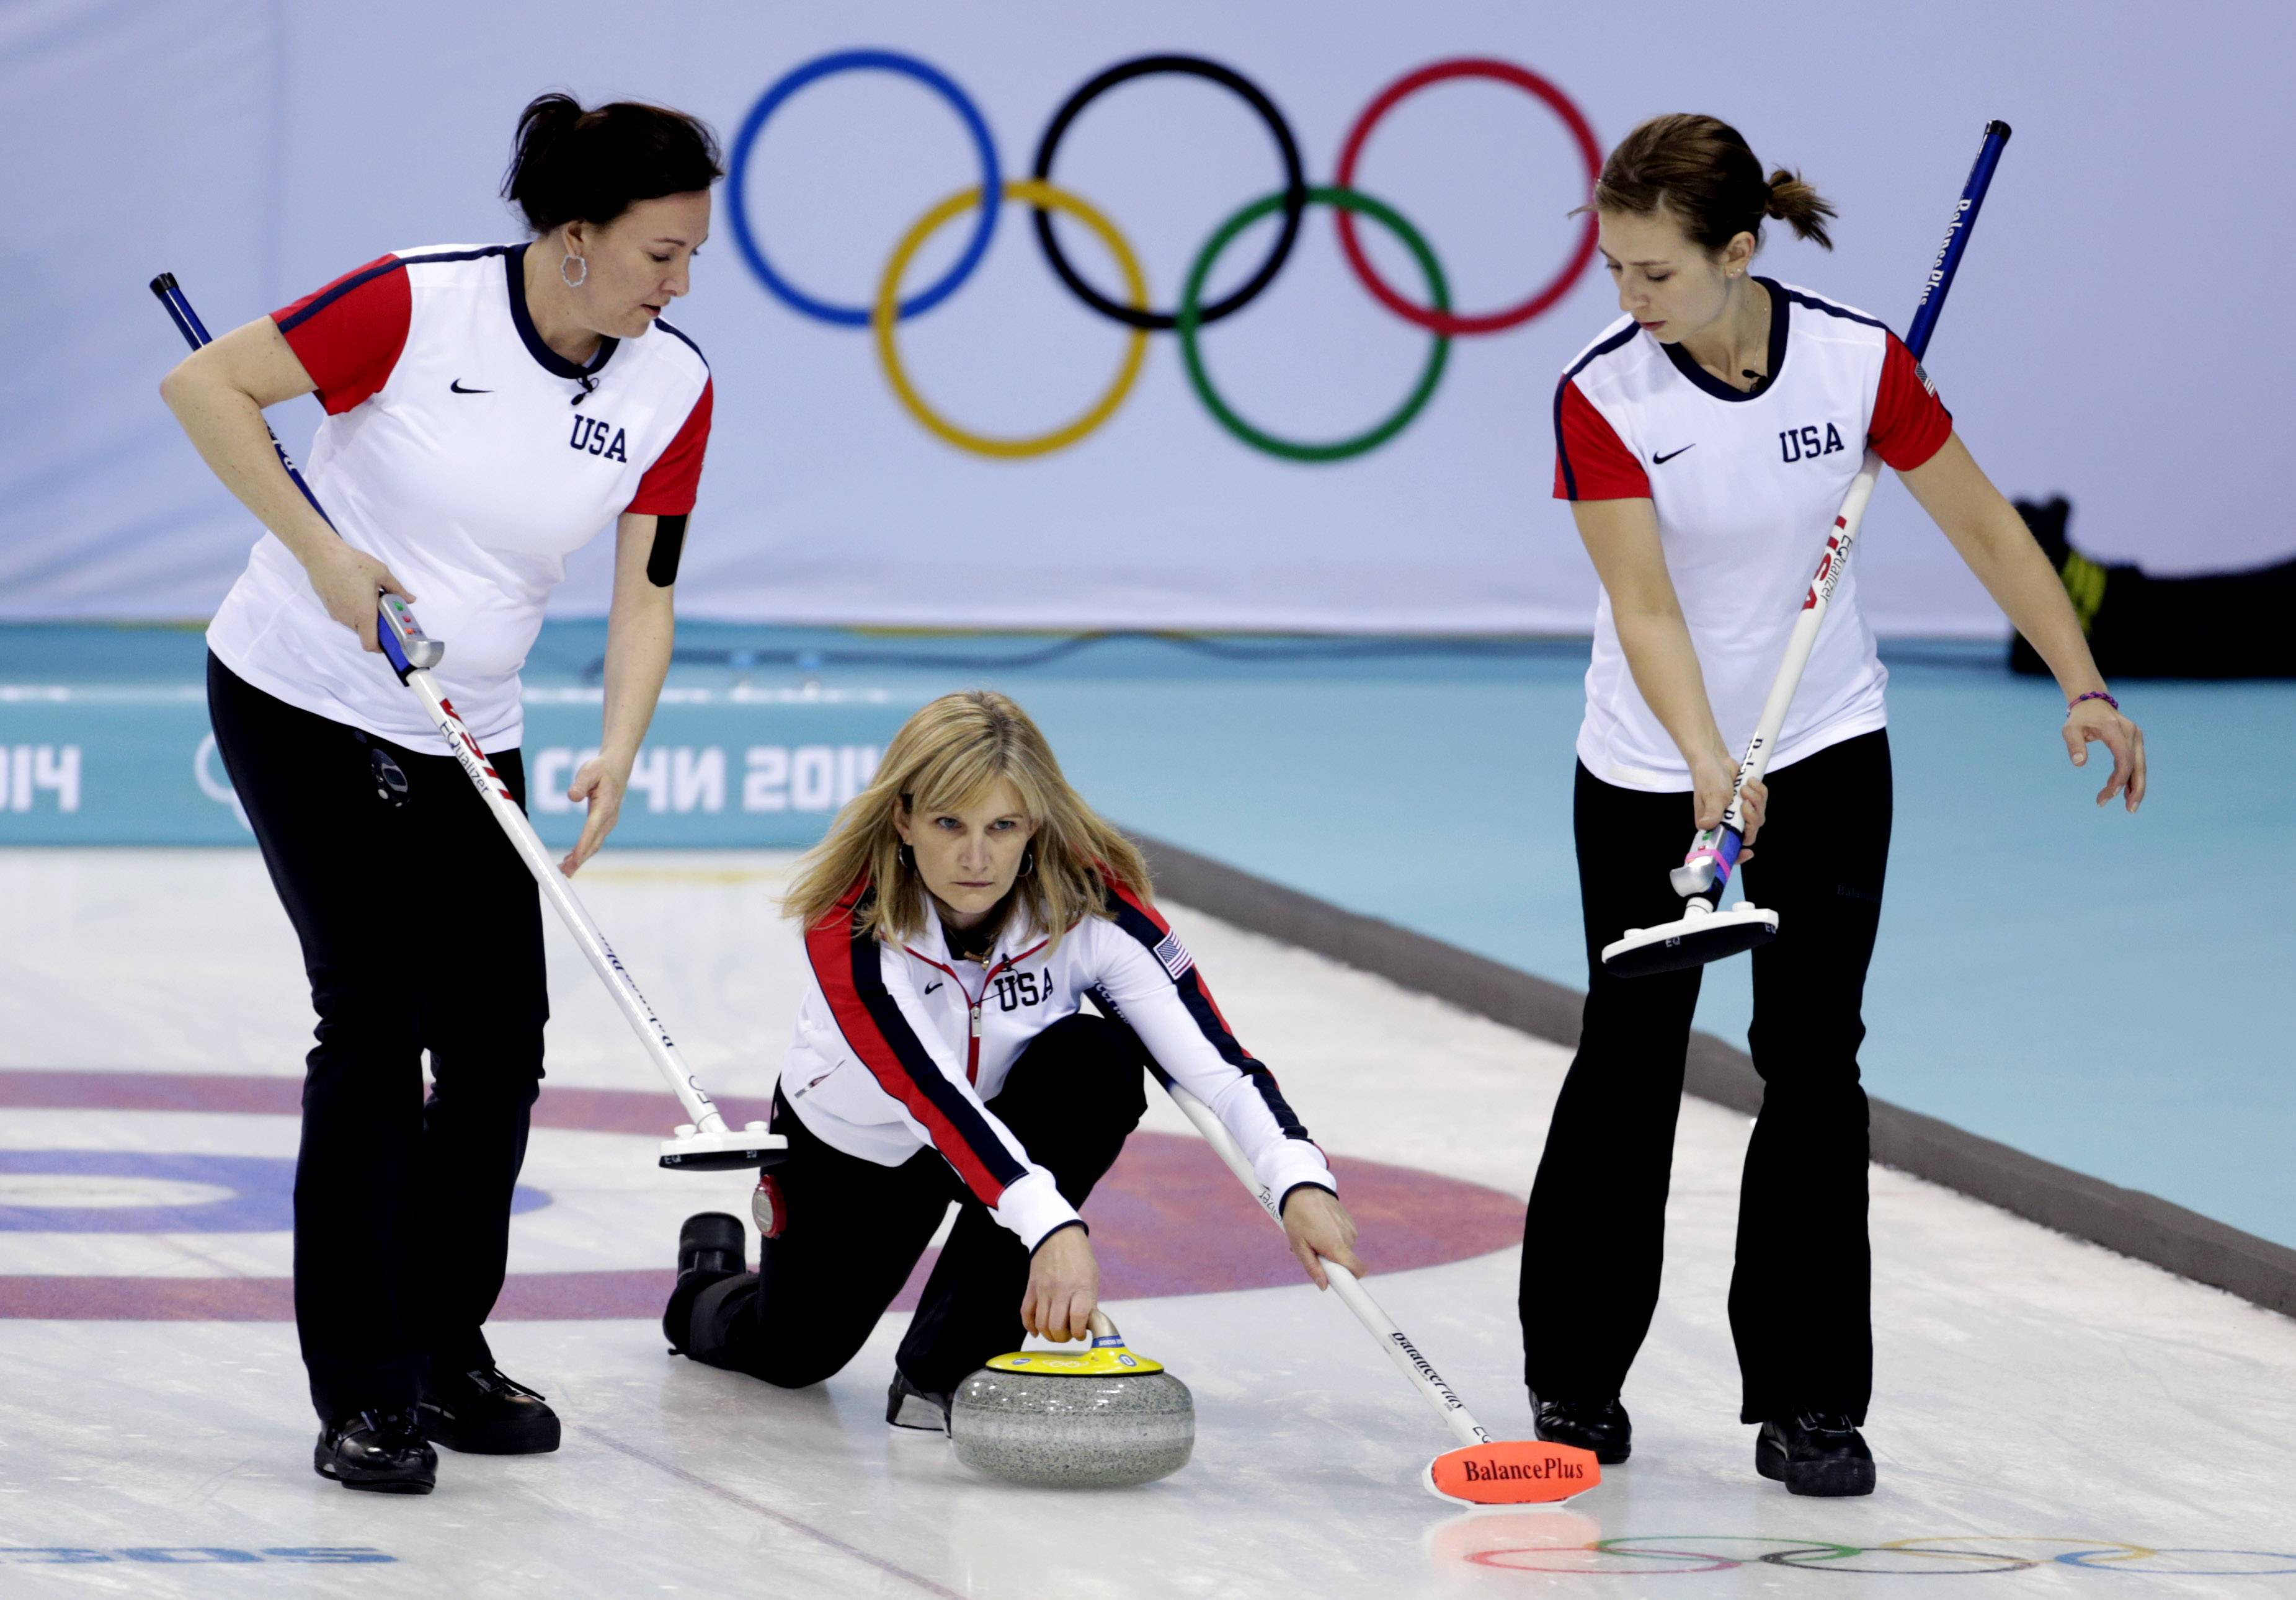 Nothing says Winter Olympics quite like curling as Erika Brown, skip of the United States team, middle, delivers the rock to her sweepers Ann Swisshelm, left, and Jessica Schultz during women's curling competition against Japan on Thursday.